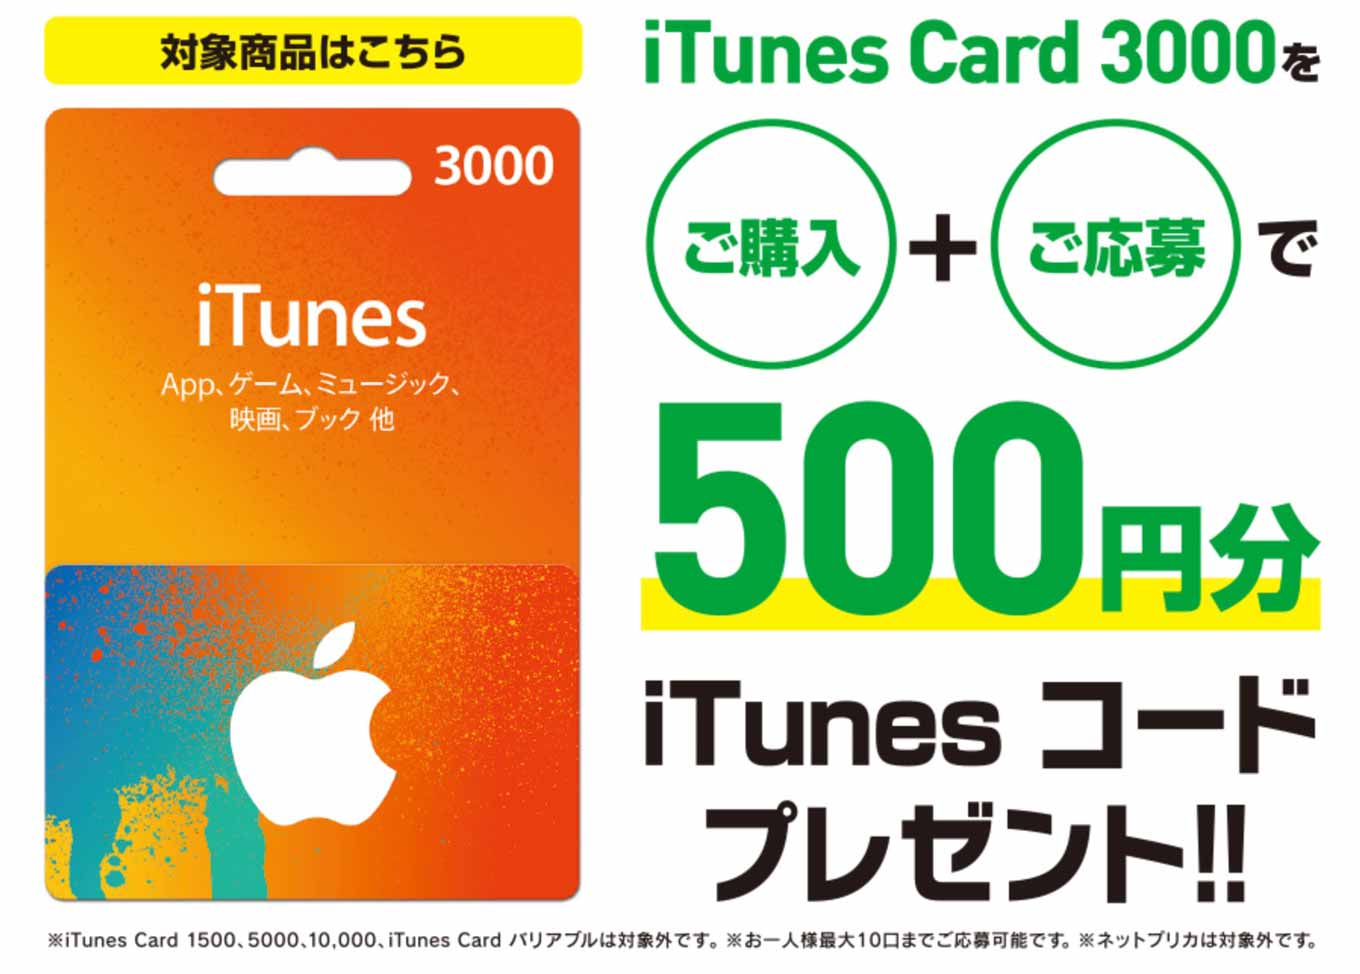 Itunescardsukruk1